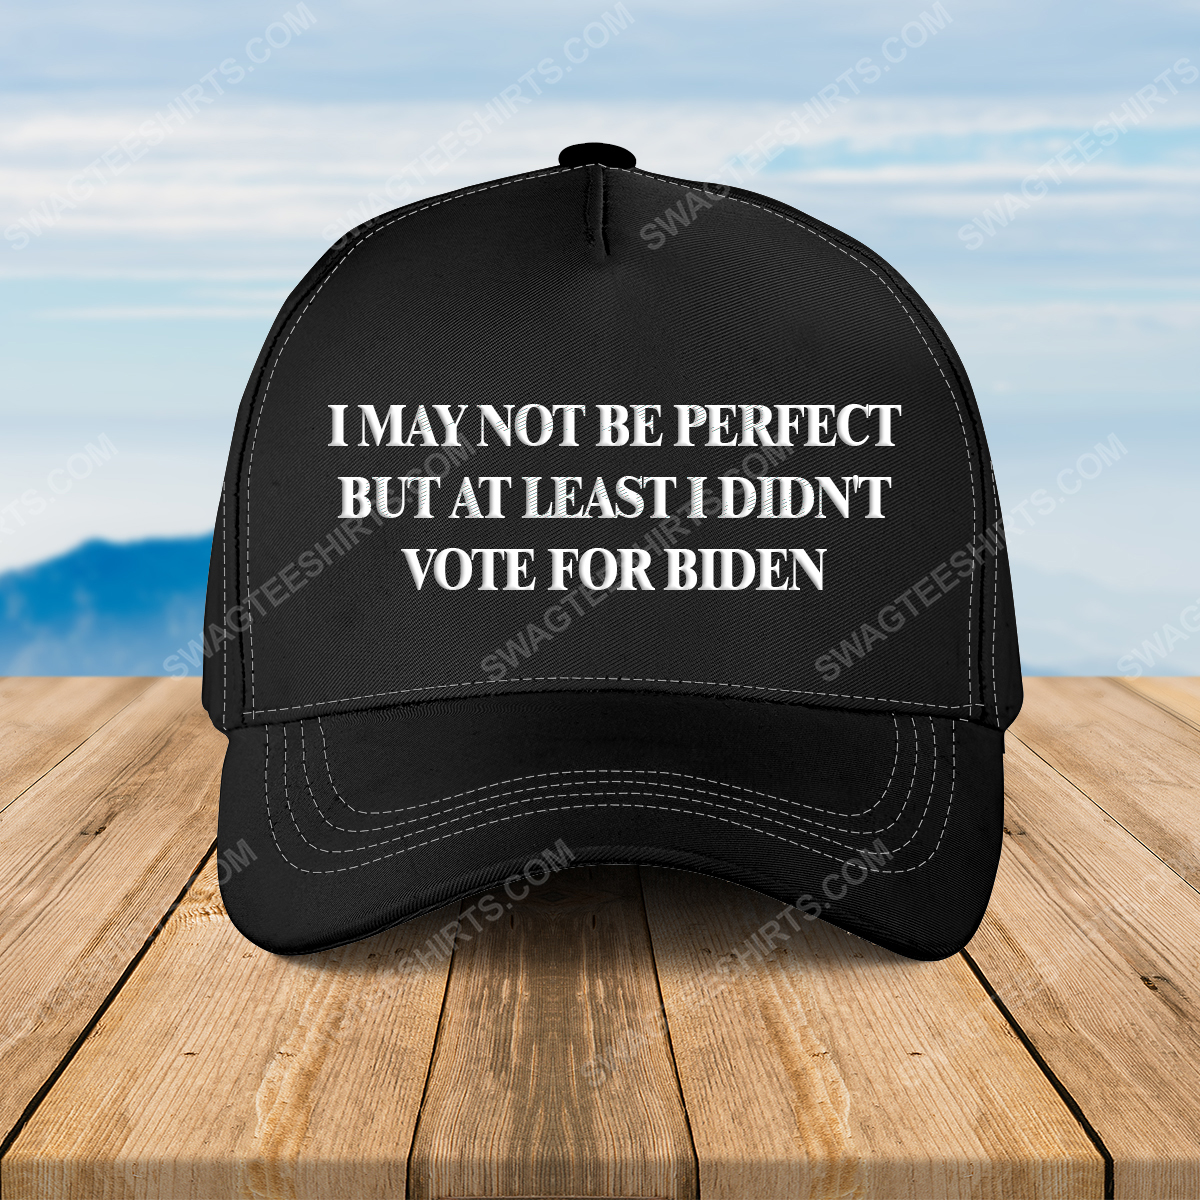 I may not be perfect but at least i didn't vote for biden full print classic hat 1